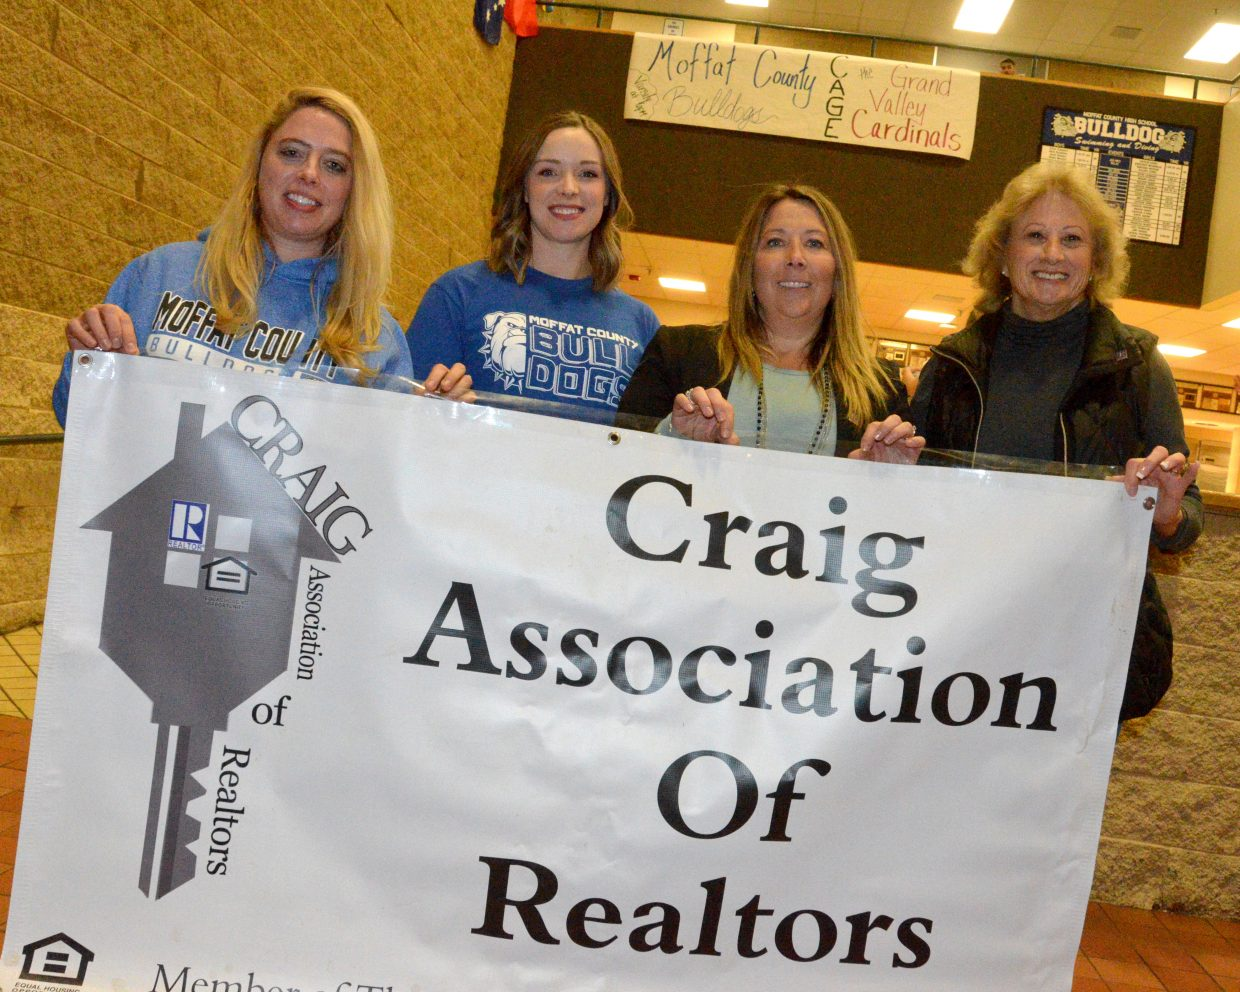 Craig Association of Realtors, who paid crowd admission for Friday's Moffat County High School basketball games, display their banner.